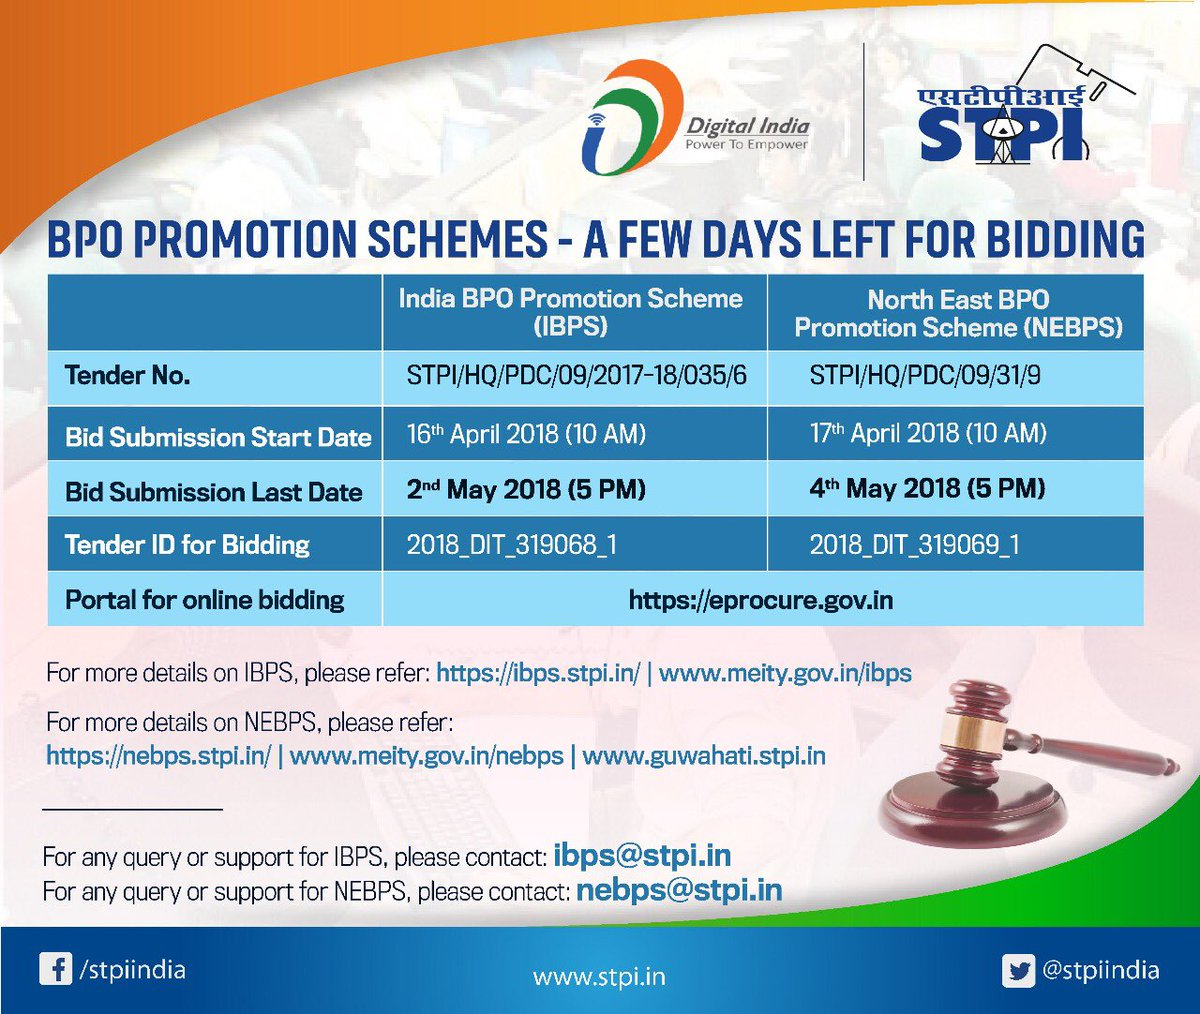 Stpi On Twitter Stpi Directorates Are Extending Full Support To Prospective Bidders For Online Bidding Process Of Bposcheme And Urging Them To Bid Early And Well Before 2nd May 2018 Digitalindia Rsprasad